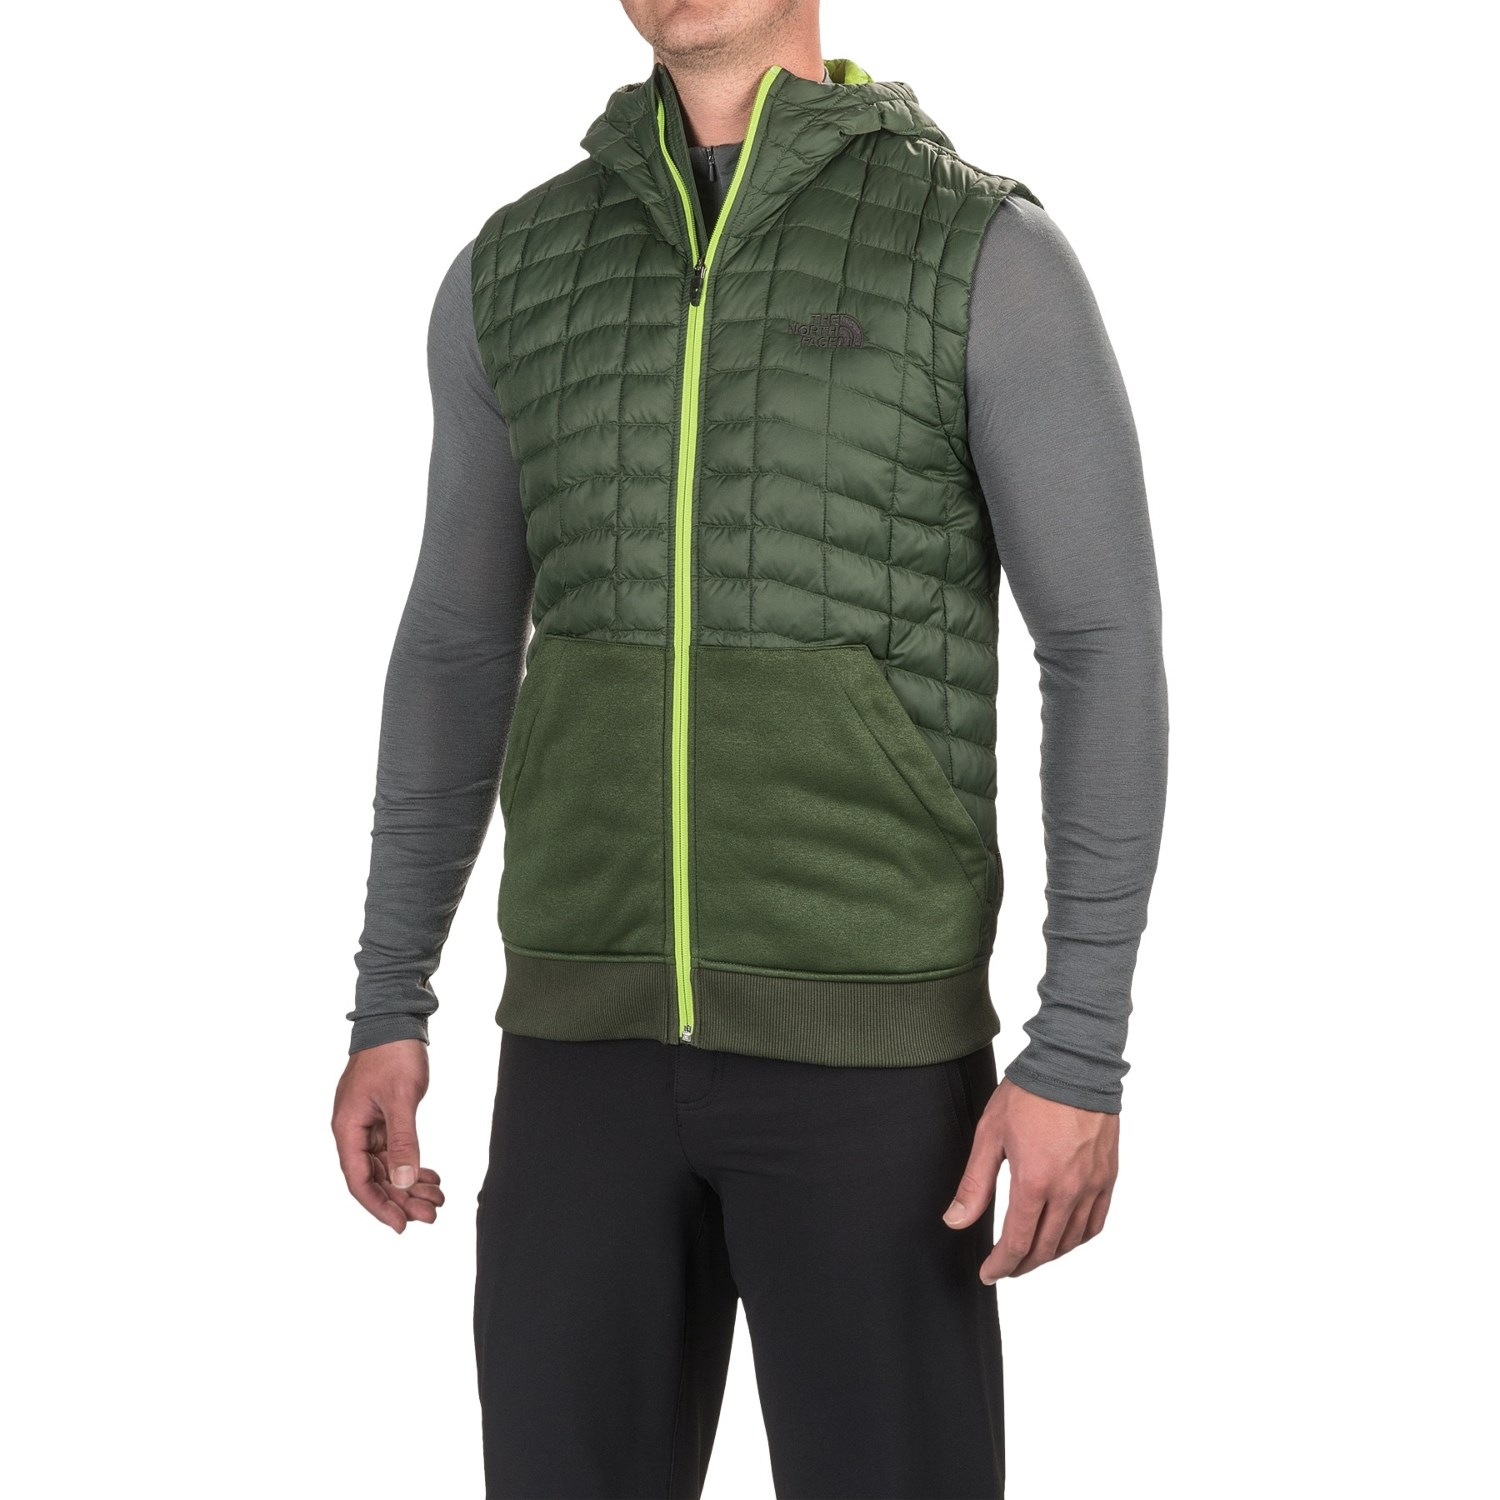 617098291 mens north face sweater vest jacket